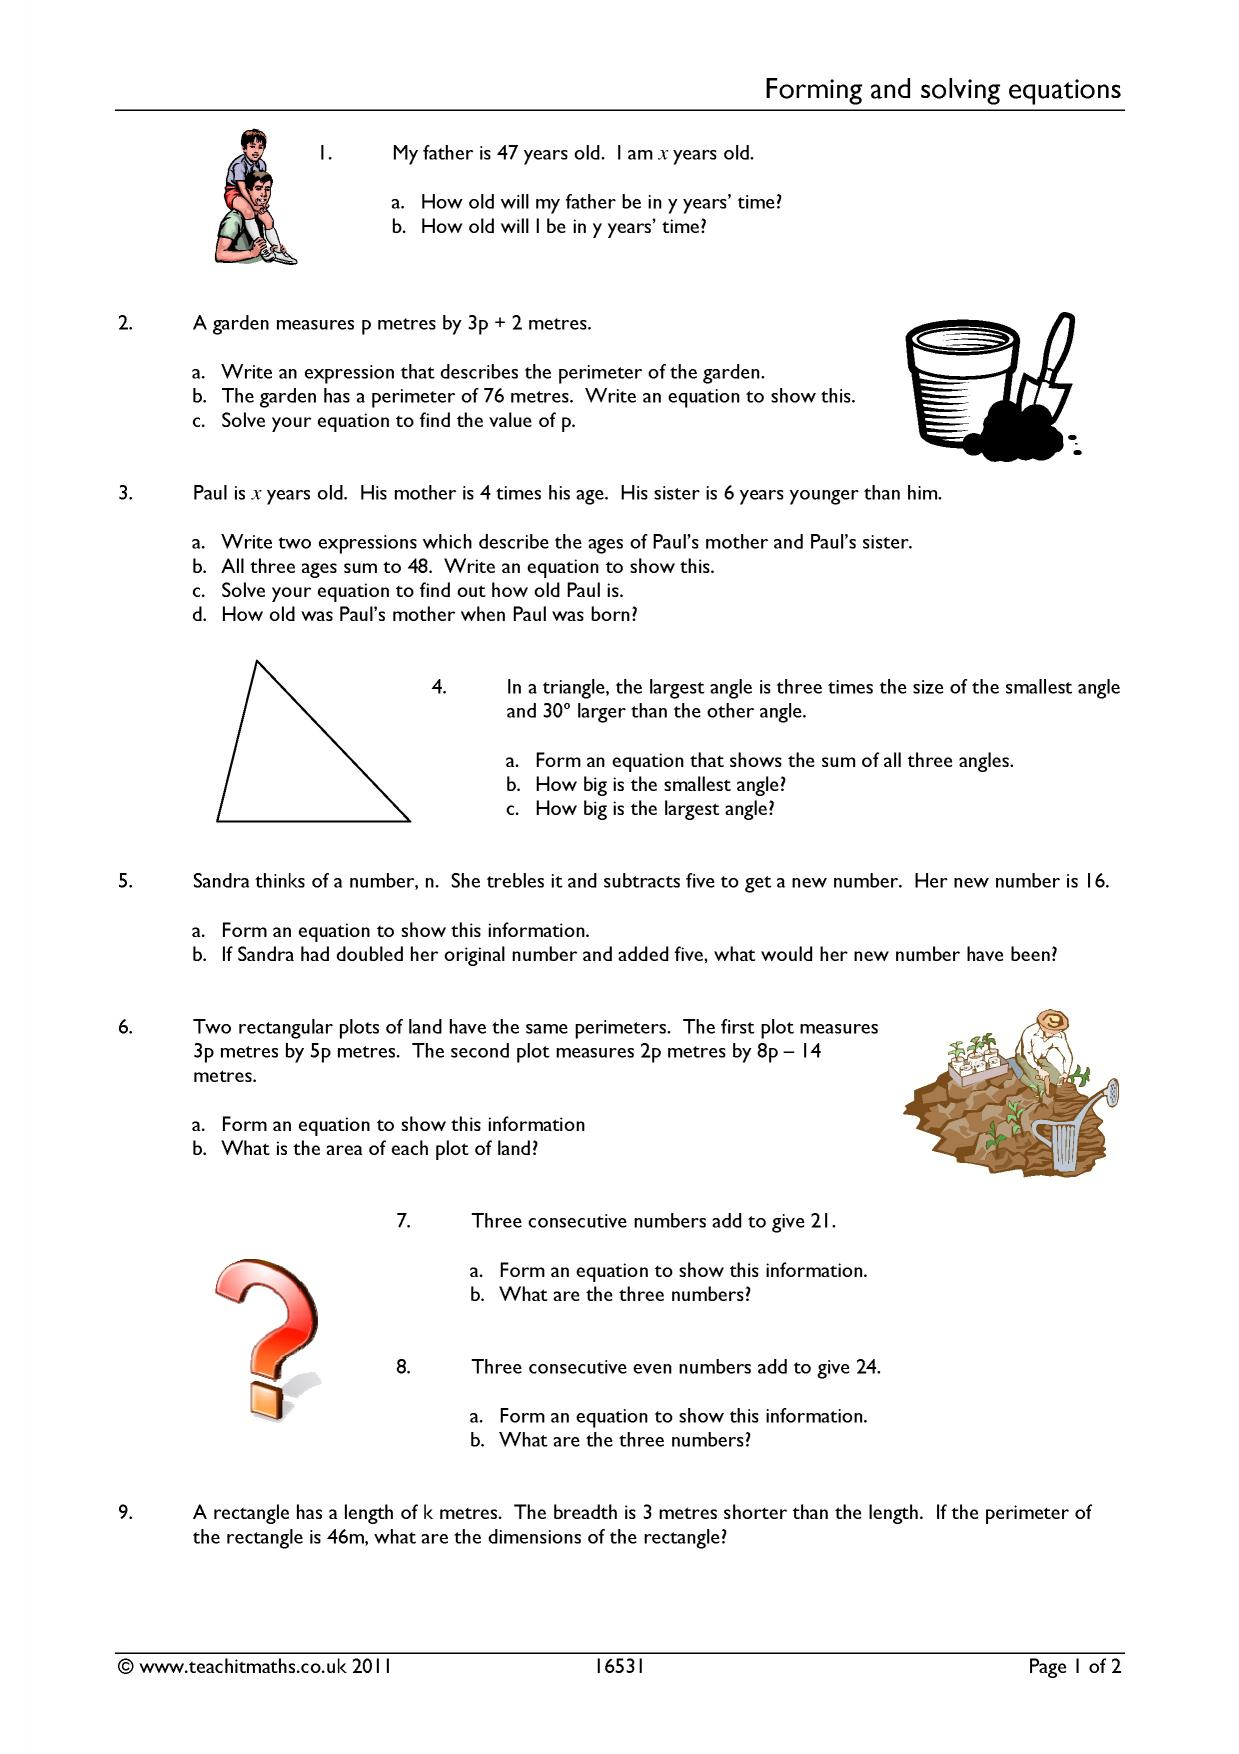 Forming And Solving Equations Worksheet